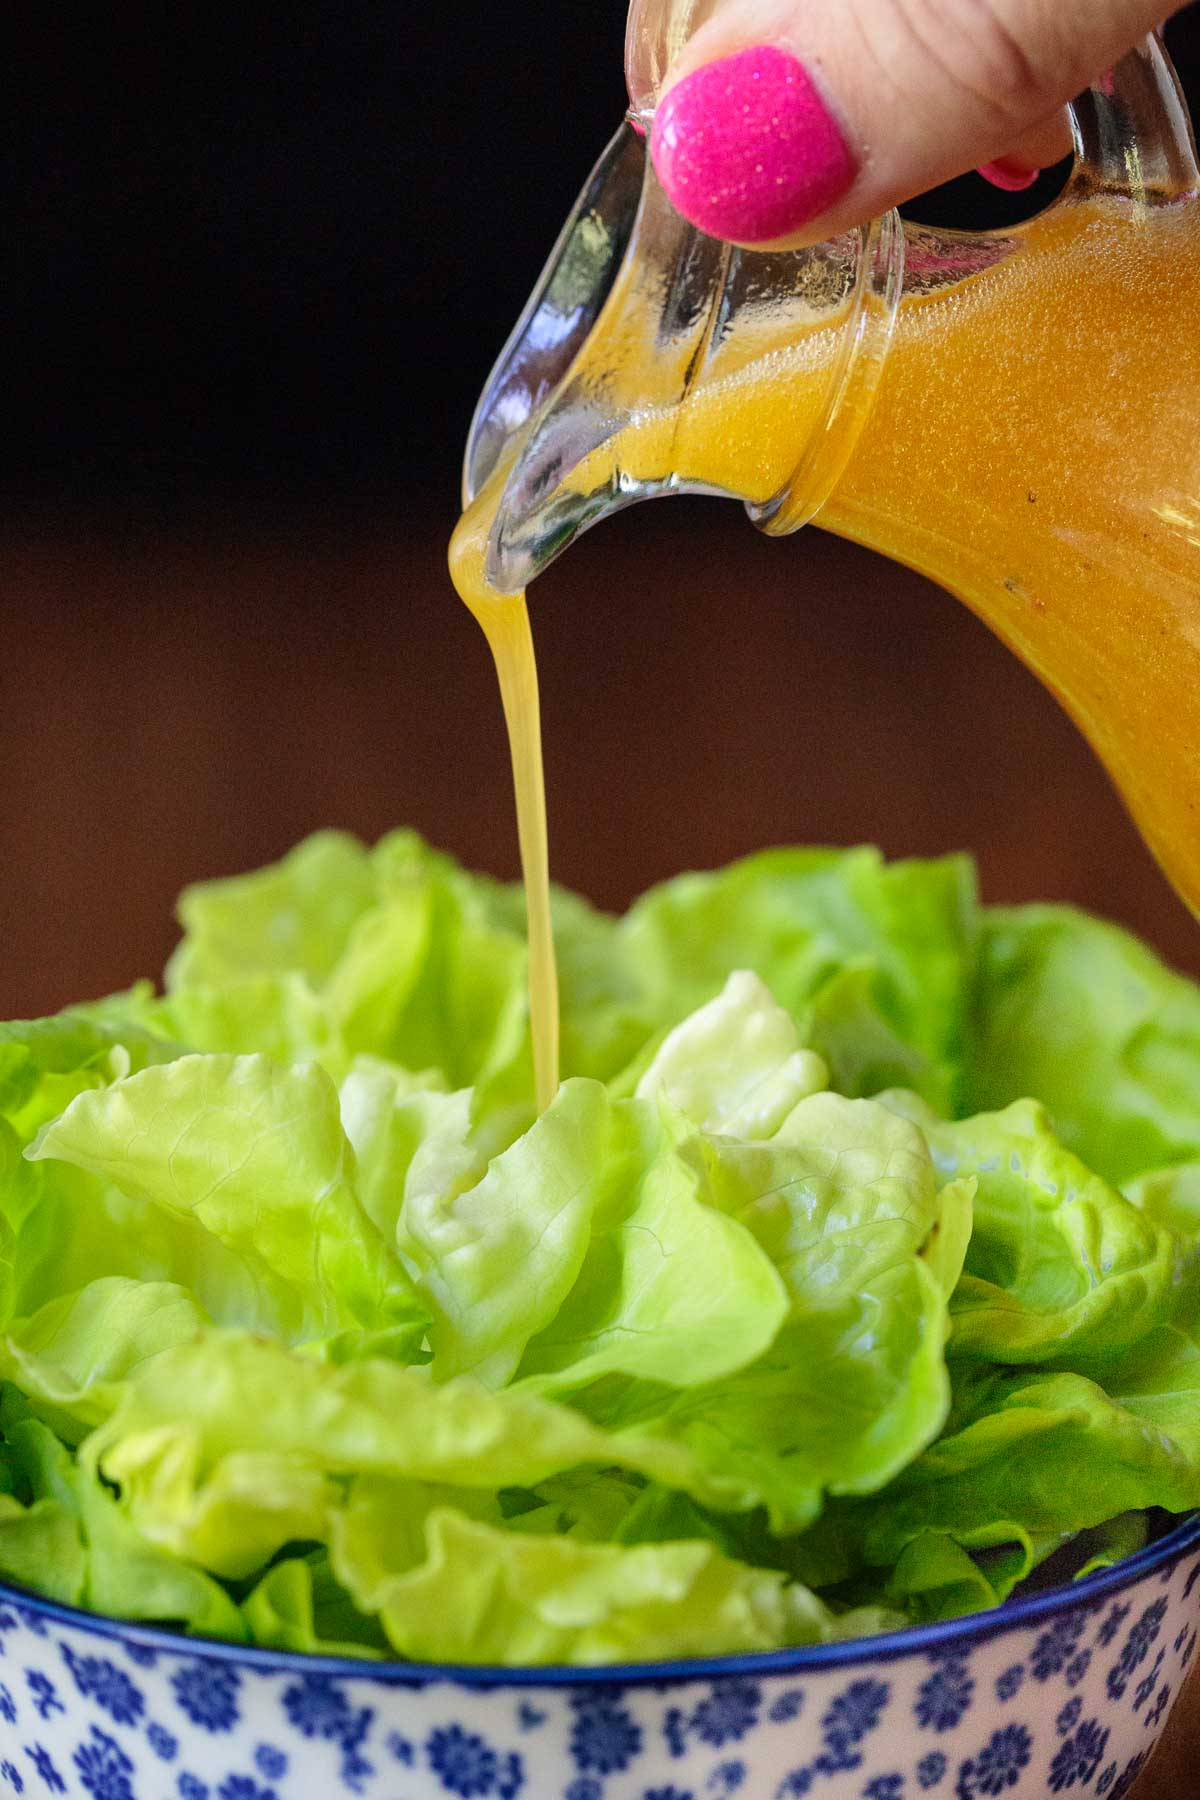 Pour shot of a small glass pitcher of Chili Lime Salad Dressing being poured over butter lettuce.